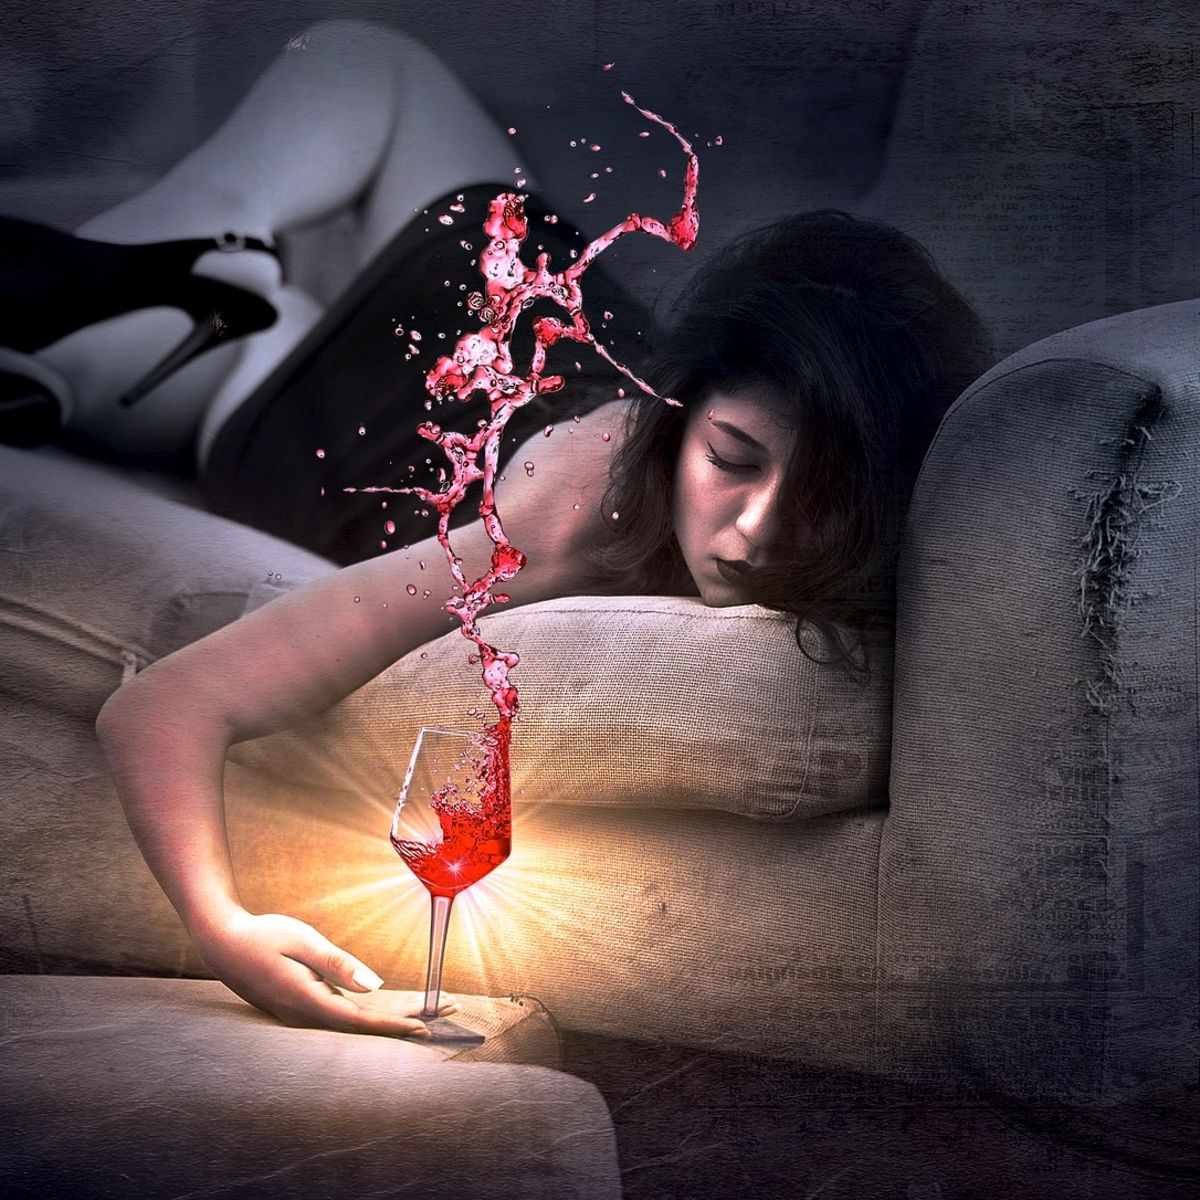 Woman on couch drinking red wine